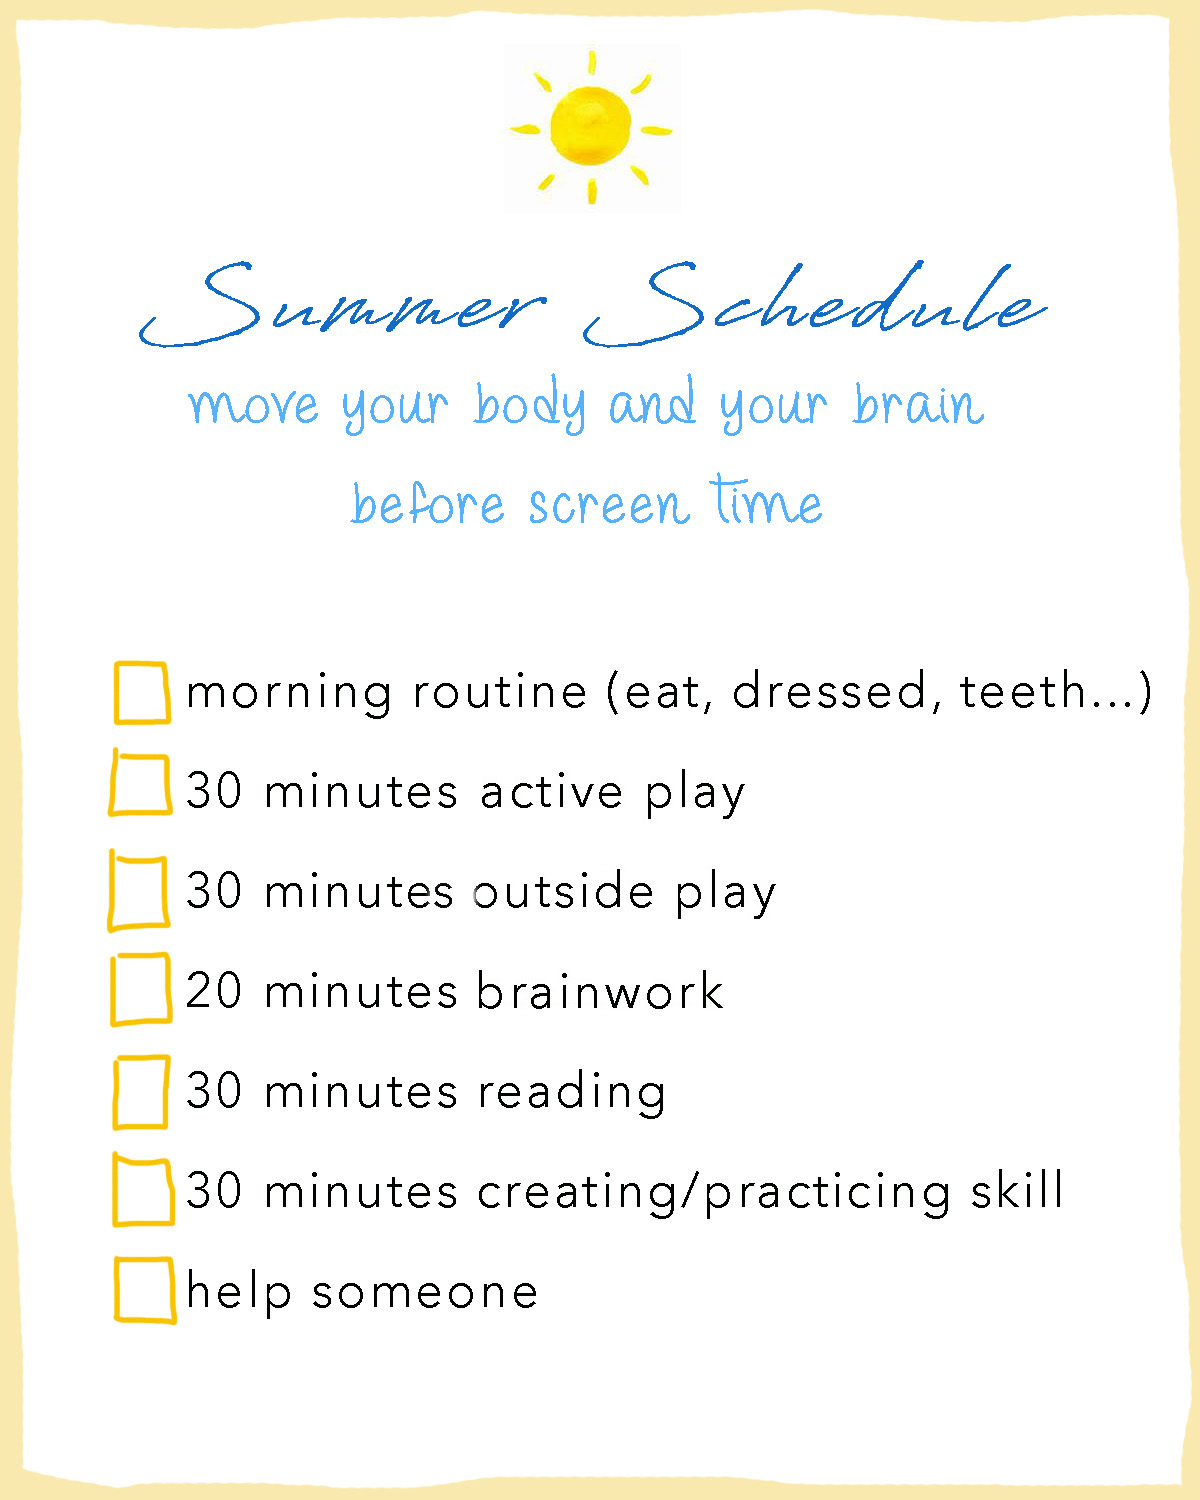 summer schedule for screen time.jpg